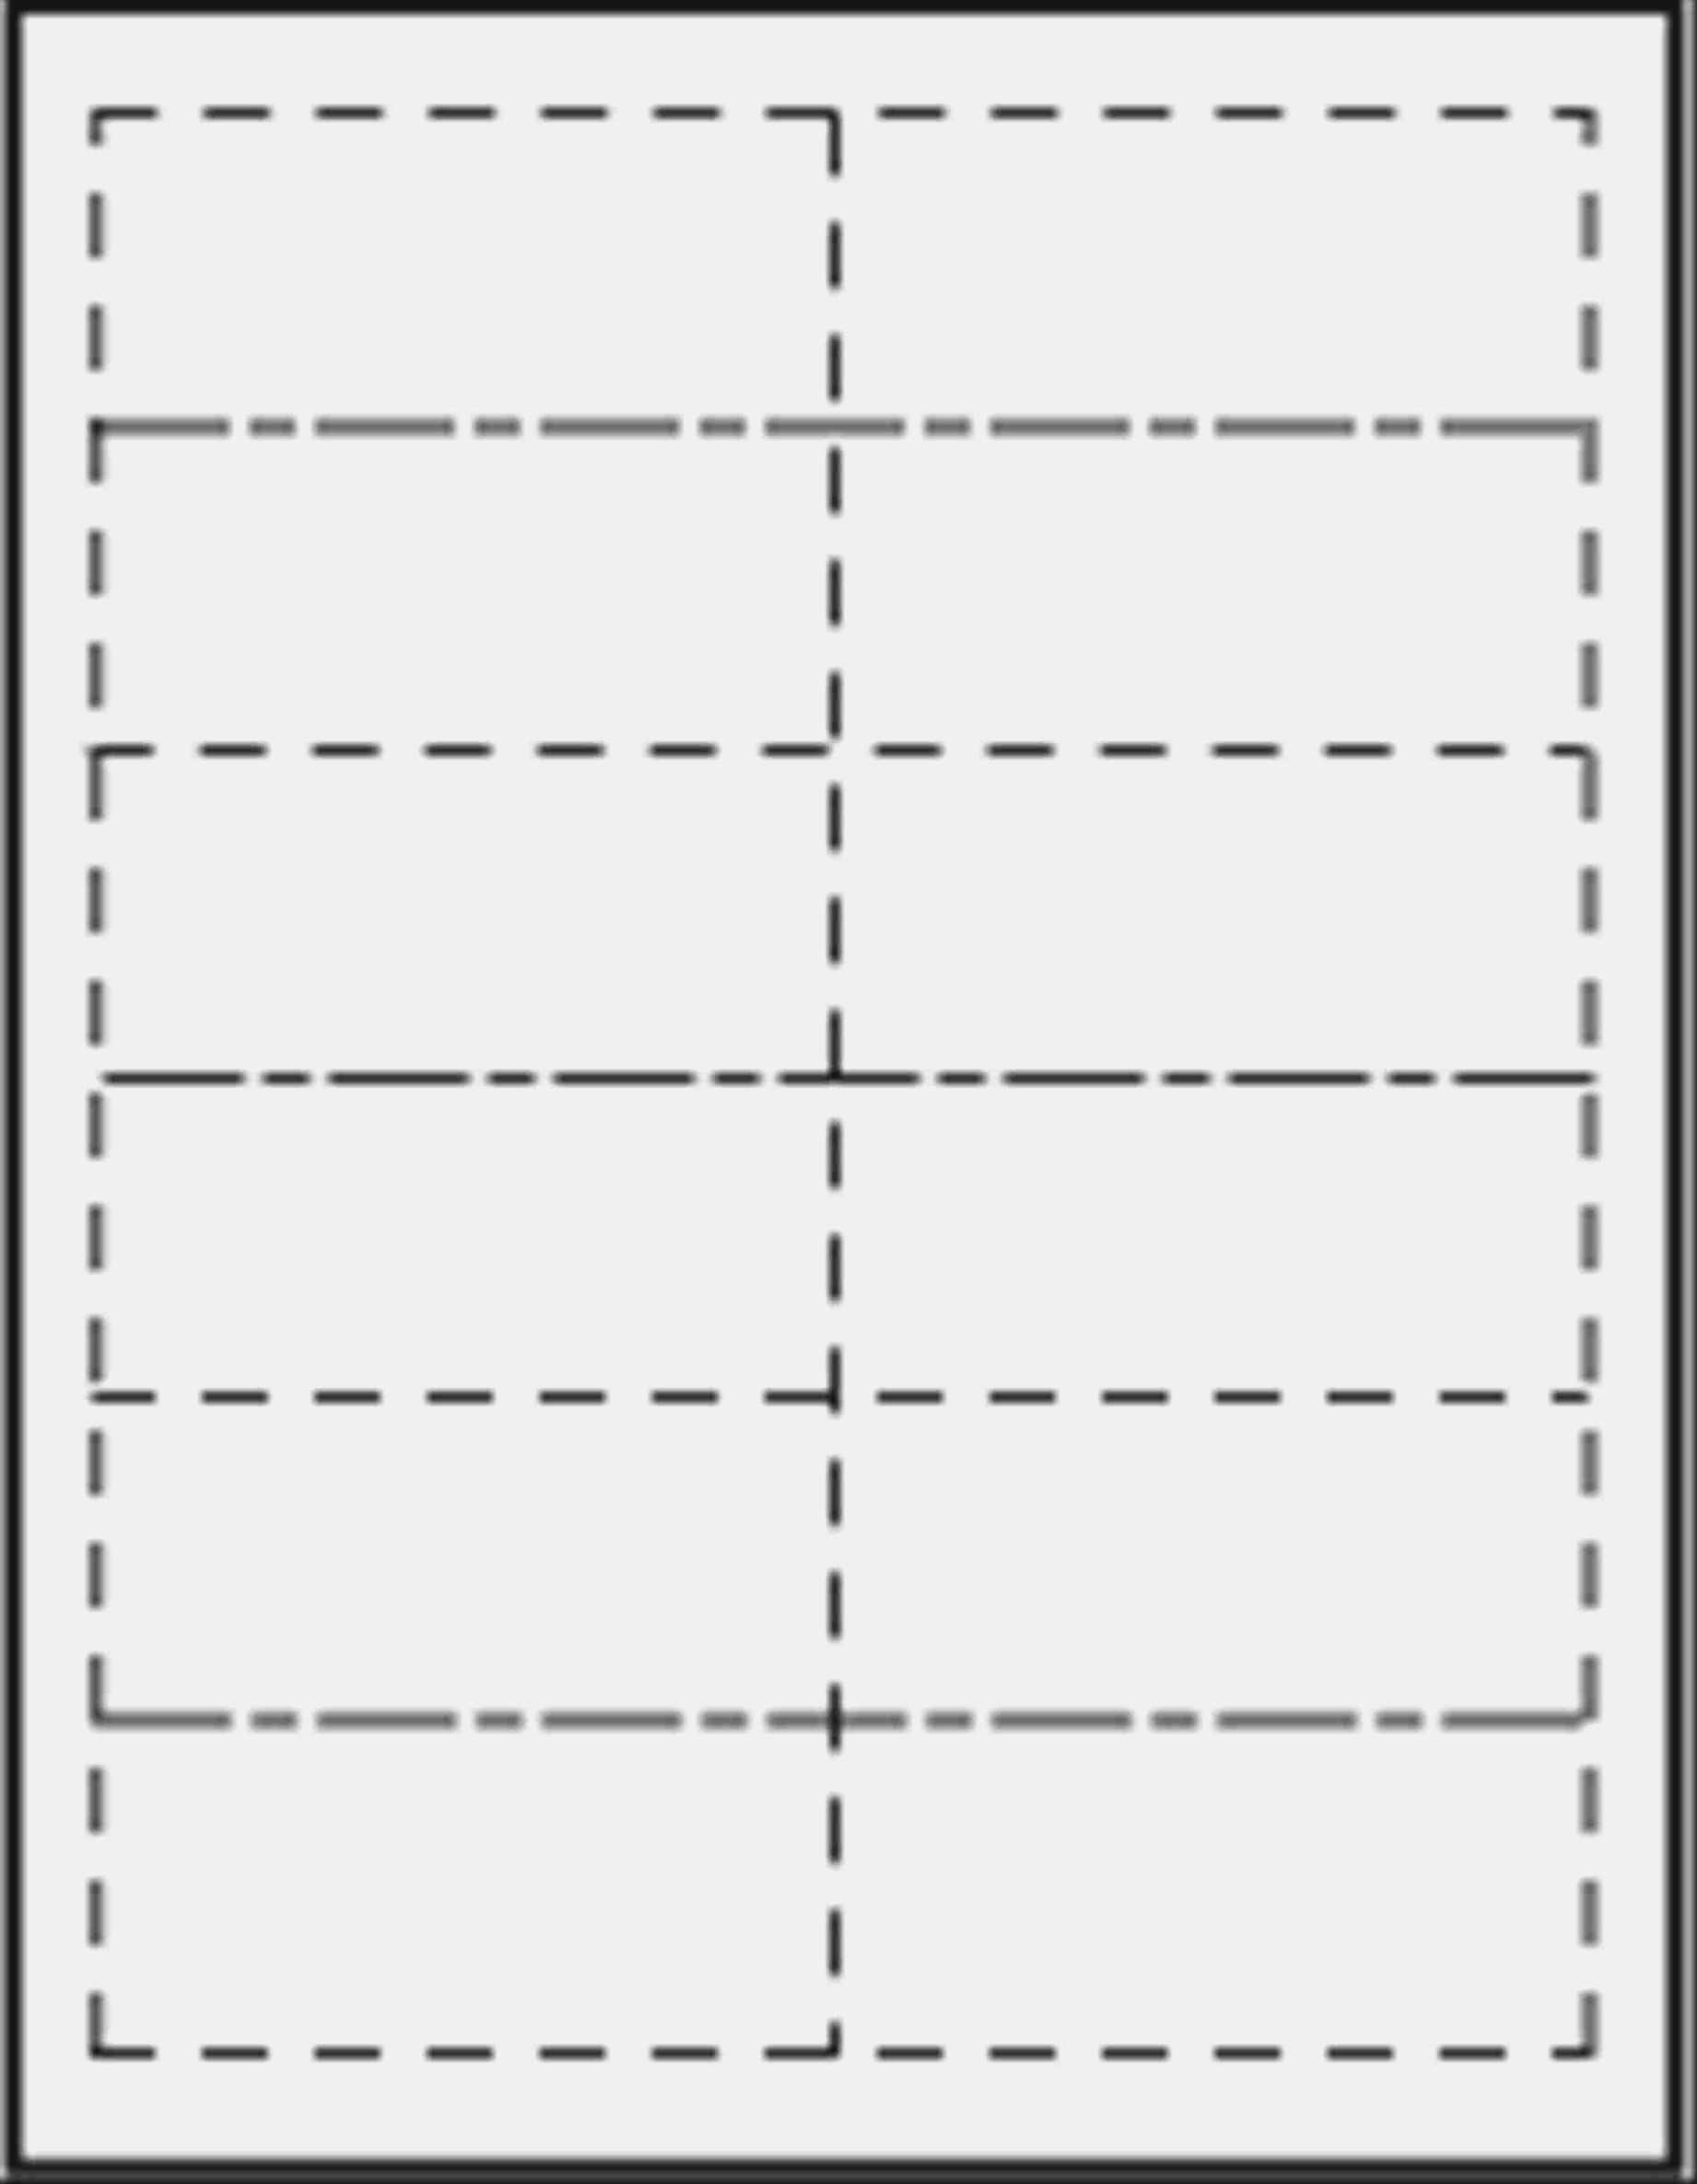 B9Cb5 Amscan Templates   Wiring Resources With Regard To Amscan Imprintable Place Card Template